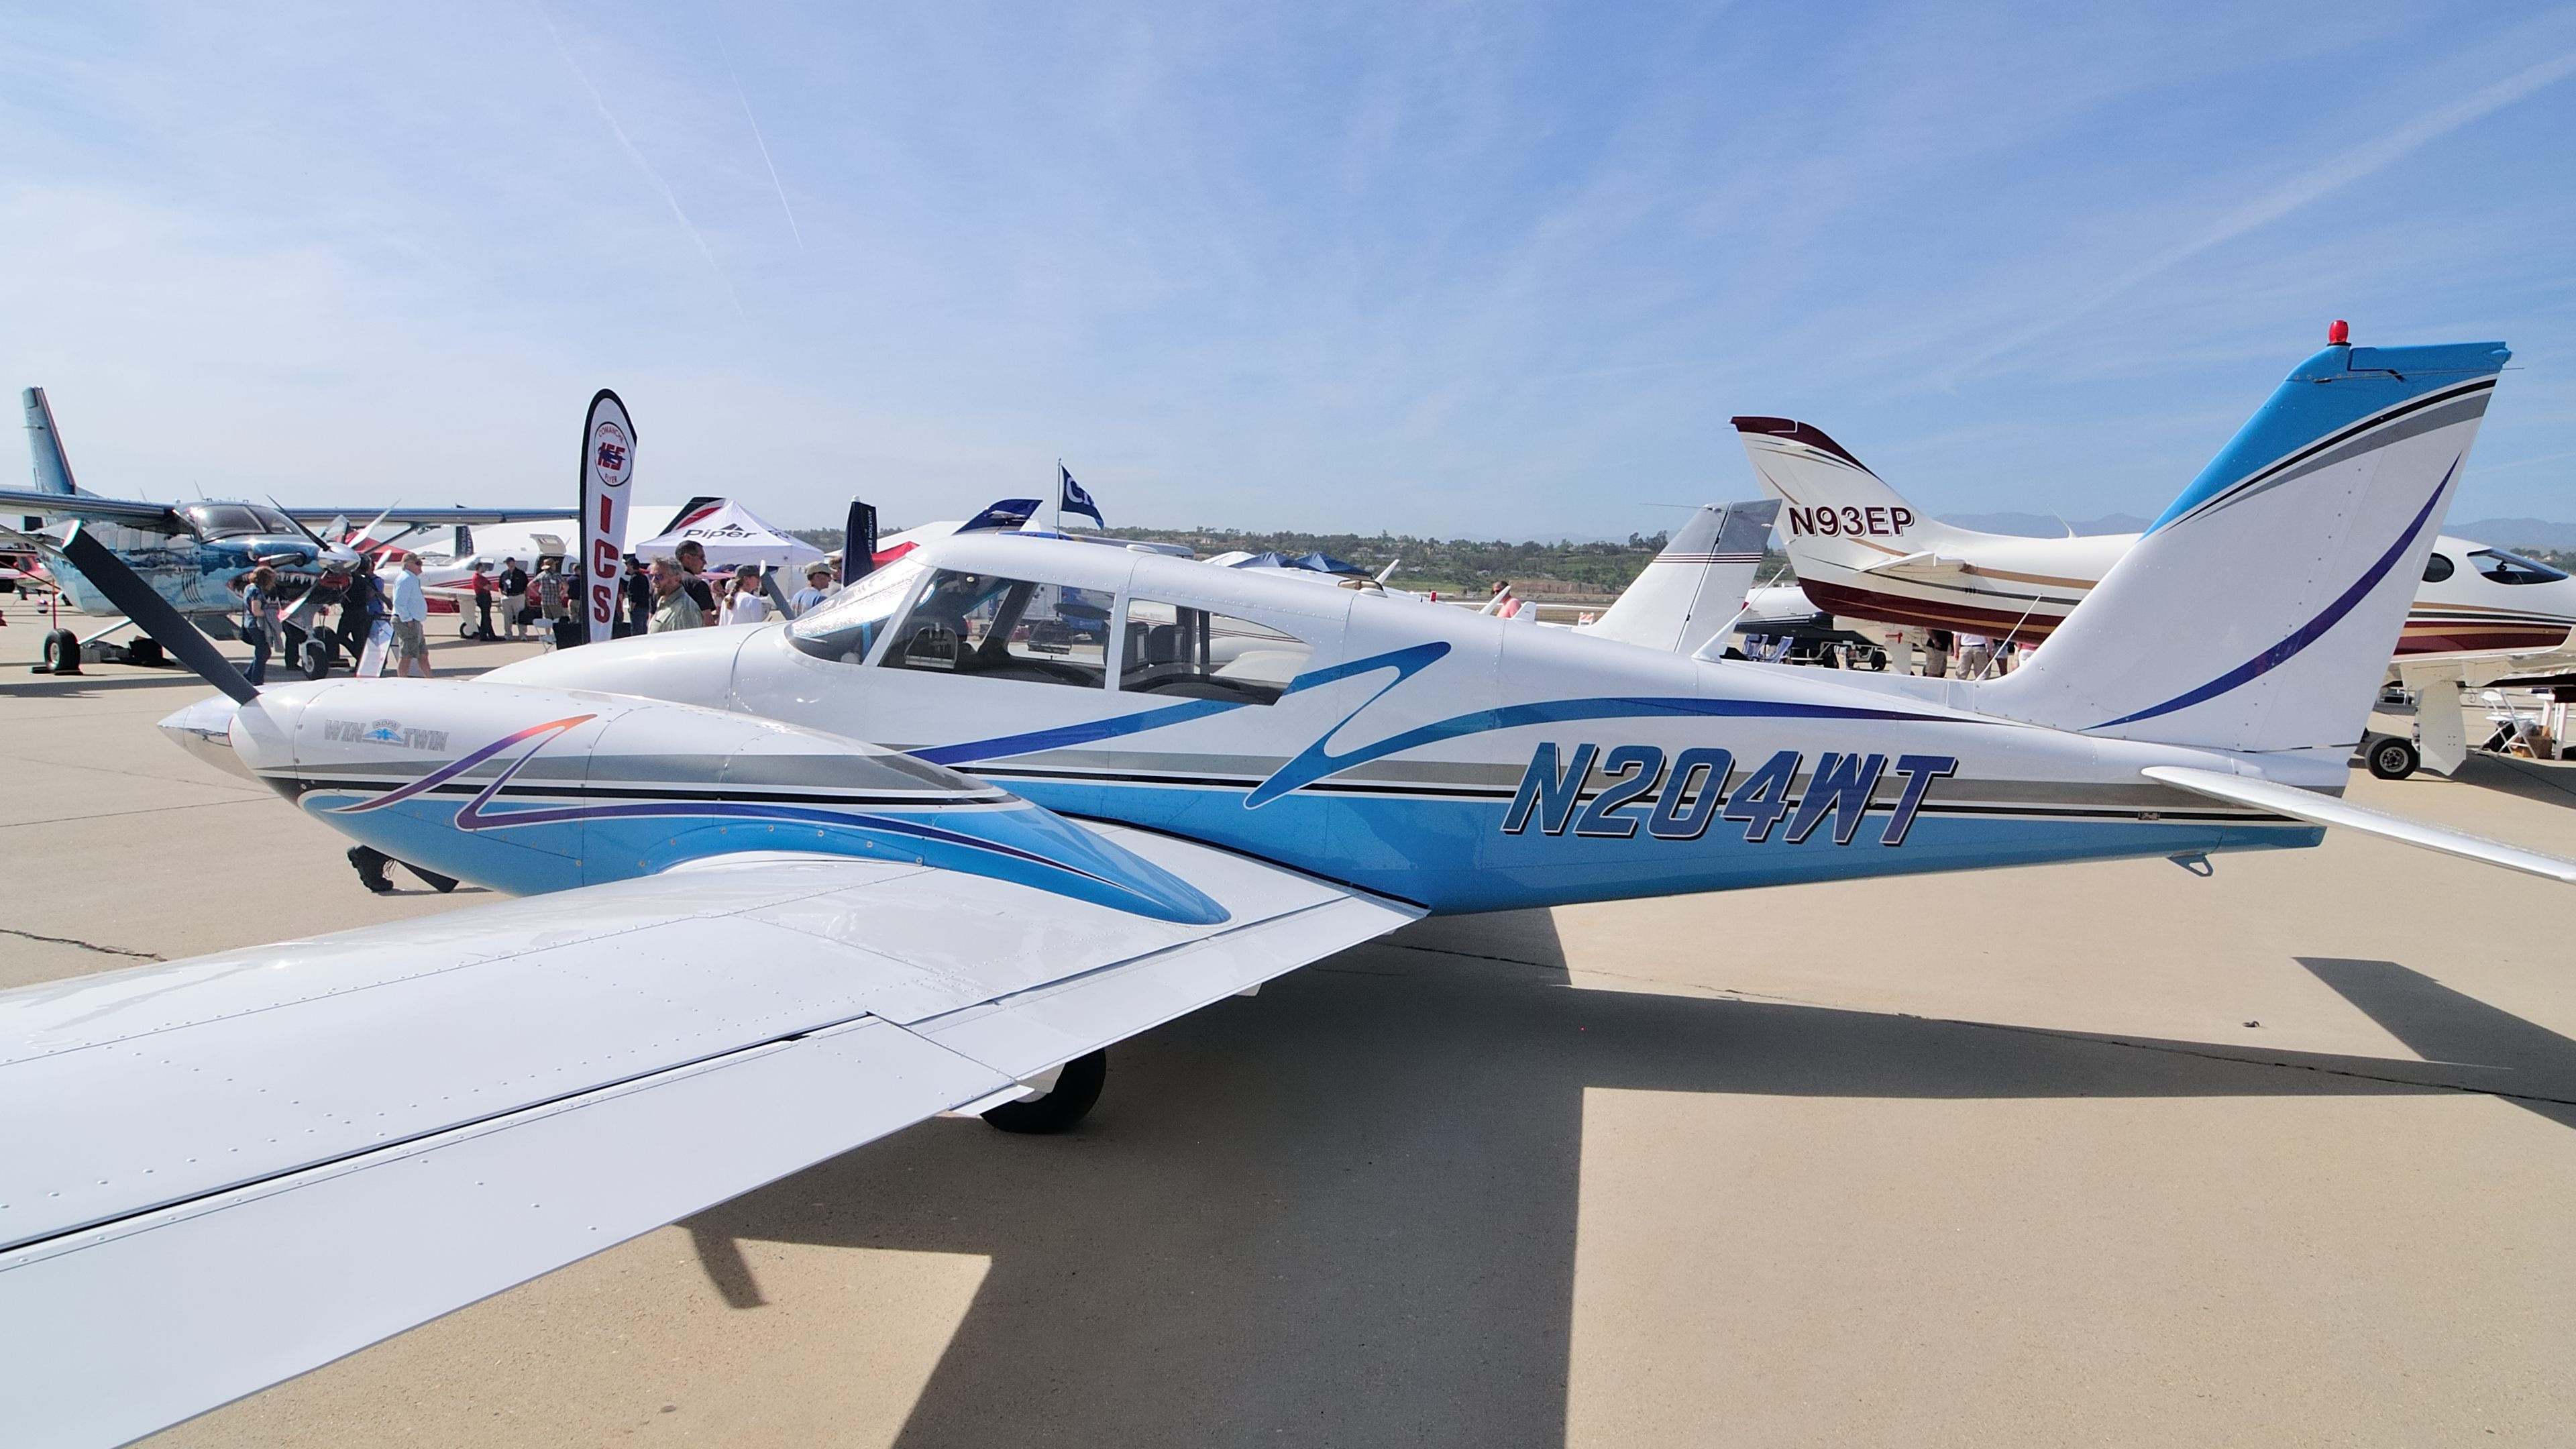 A familiar face at the Camarillo Fly-In is AOPA's 2004 Win a Twin Sweepstakes Piper Twin Comanche. It represented the International Comanche Society in the aircraft static display. Photo by Mike Collins.